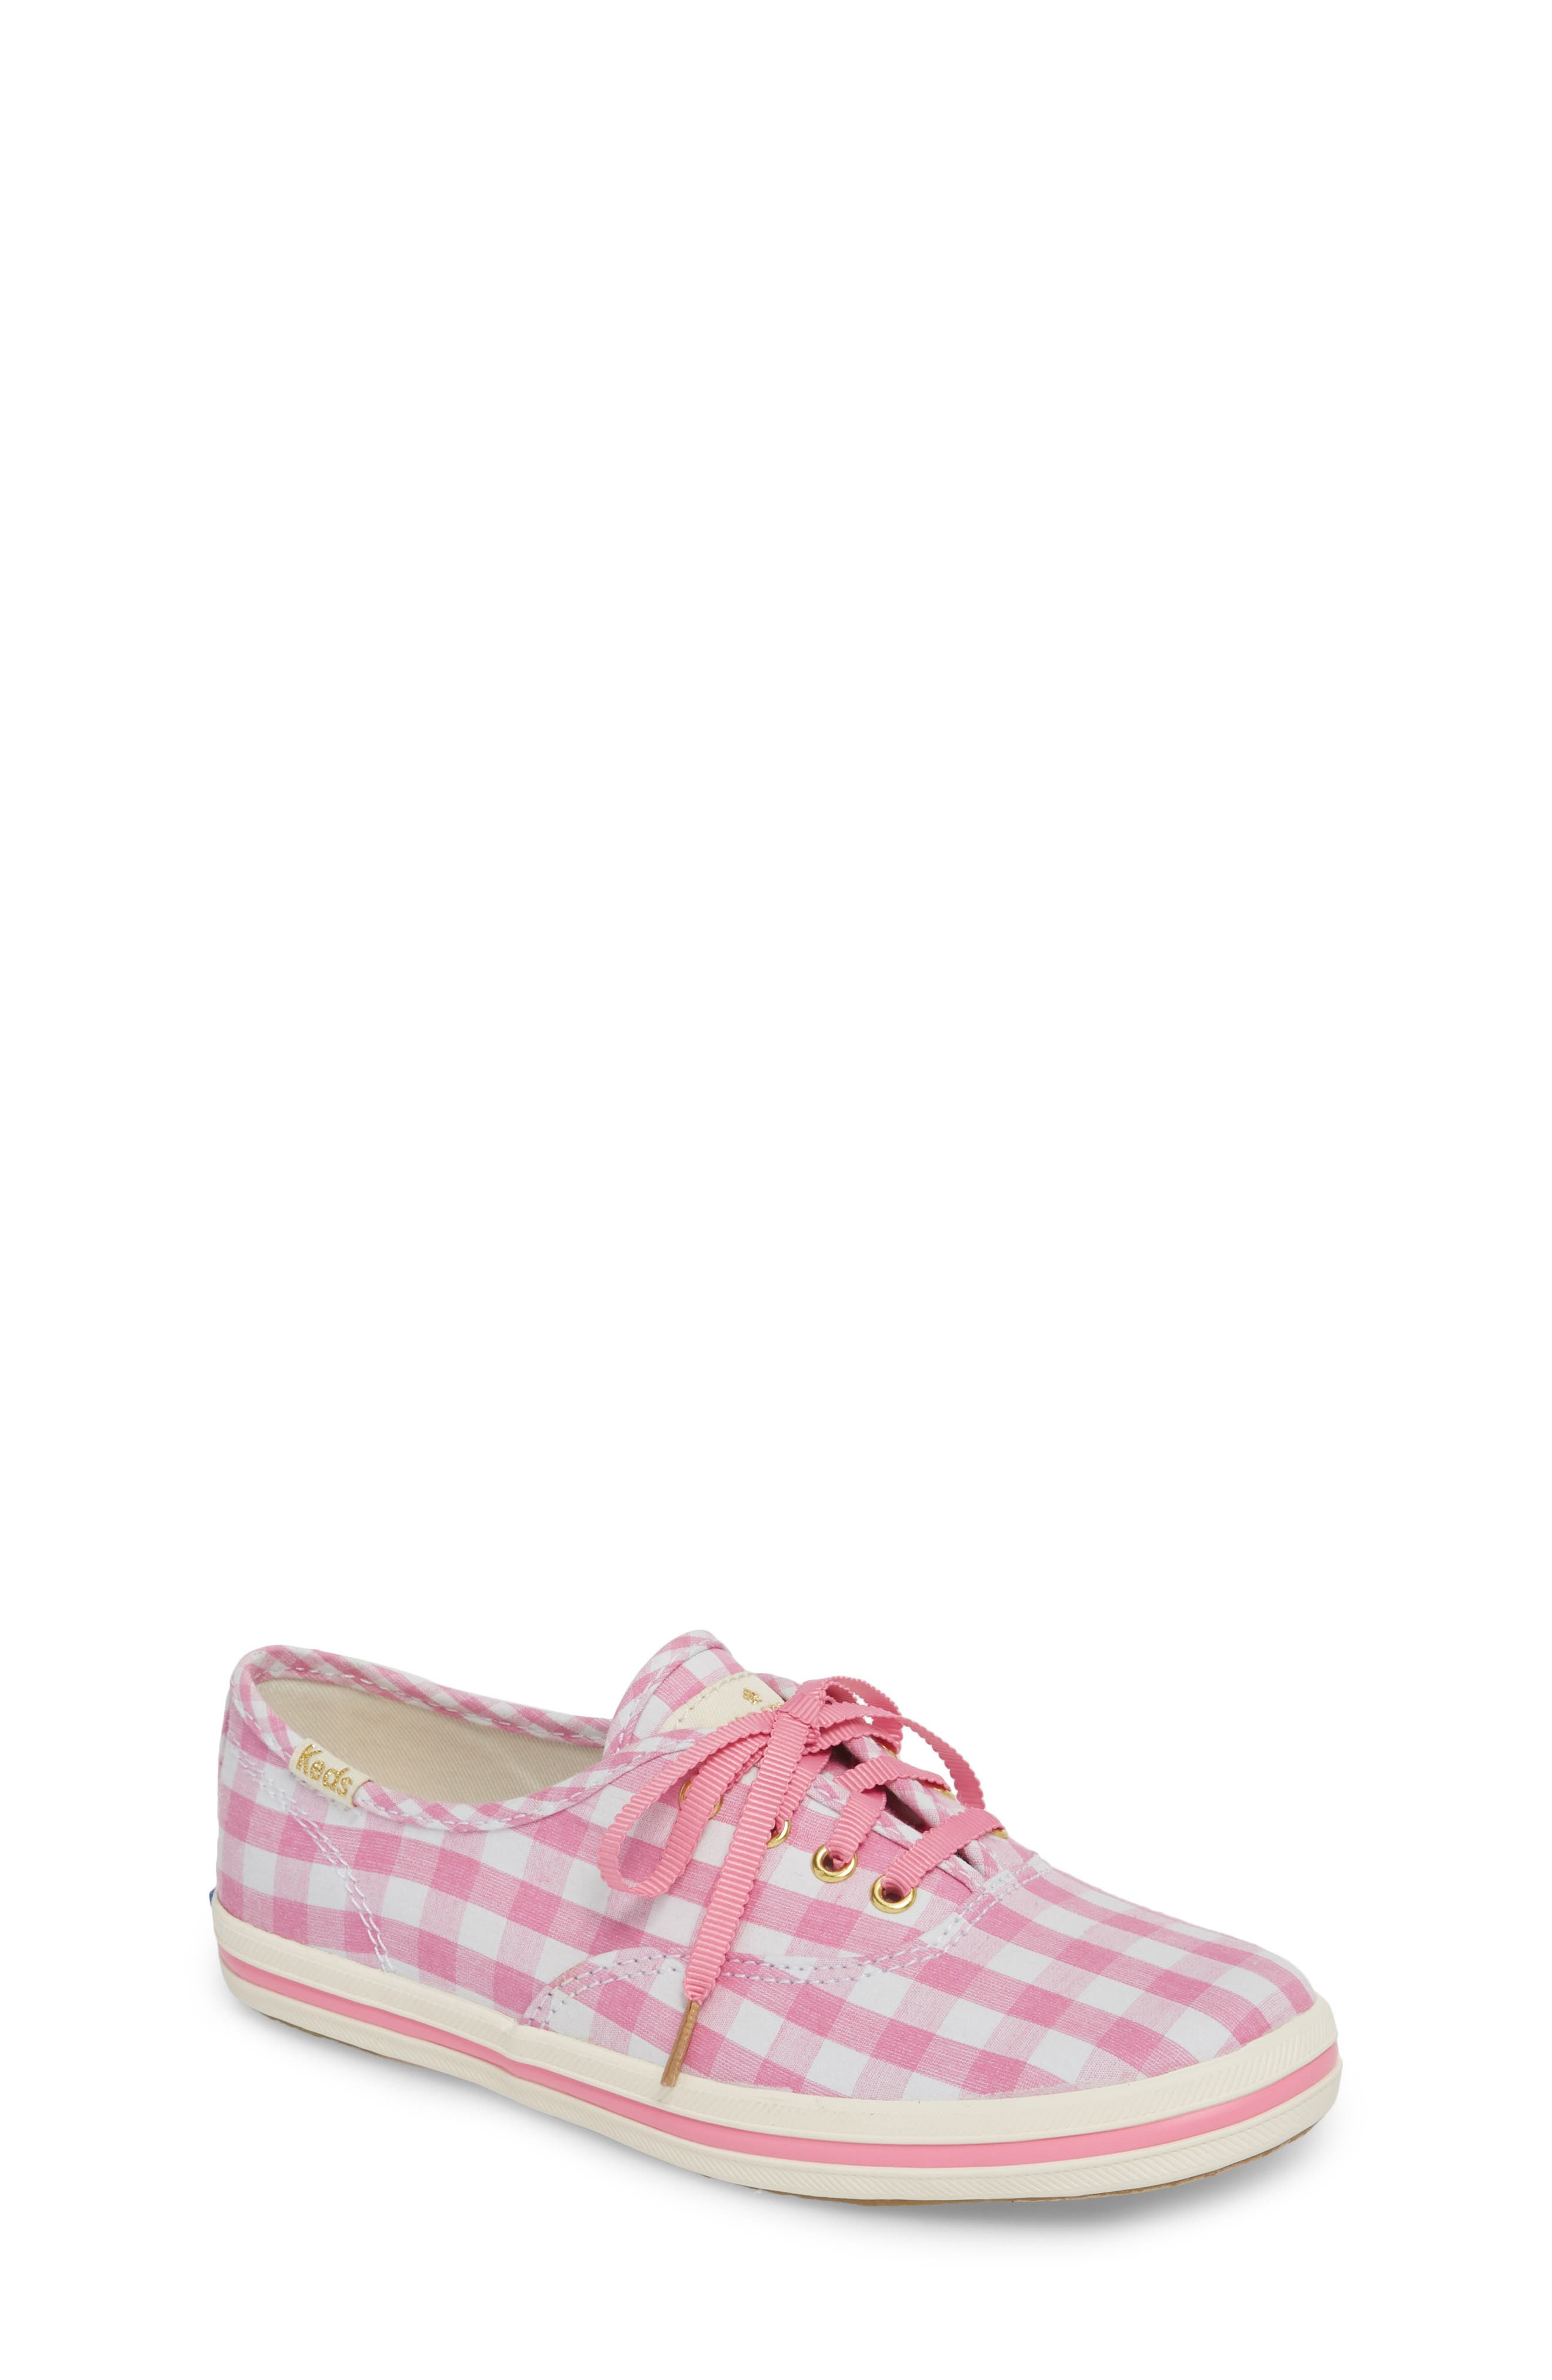 x kate spade new york champion gingham lace-up shoe,                         Main,                         color, 650